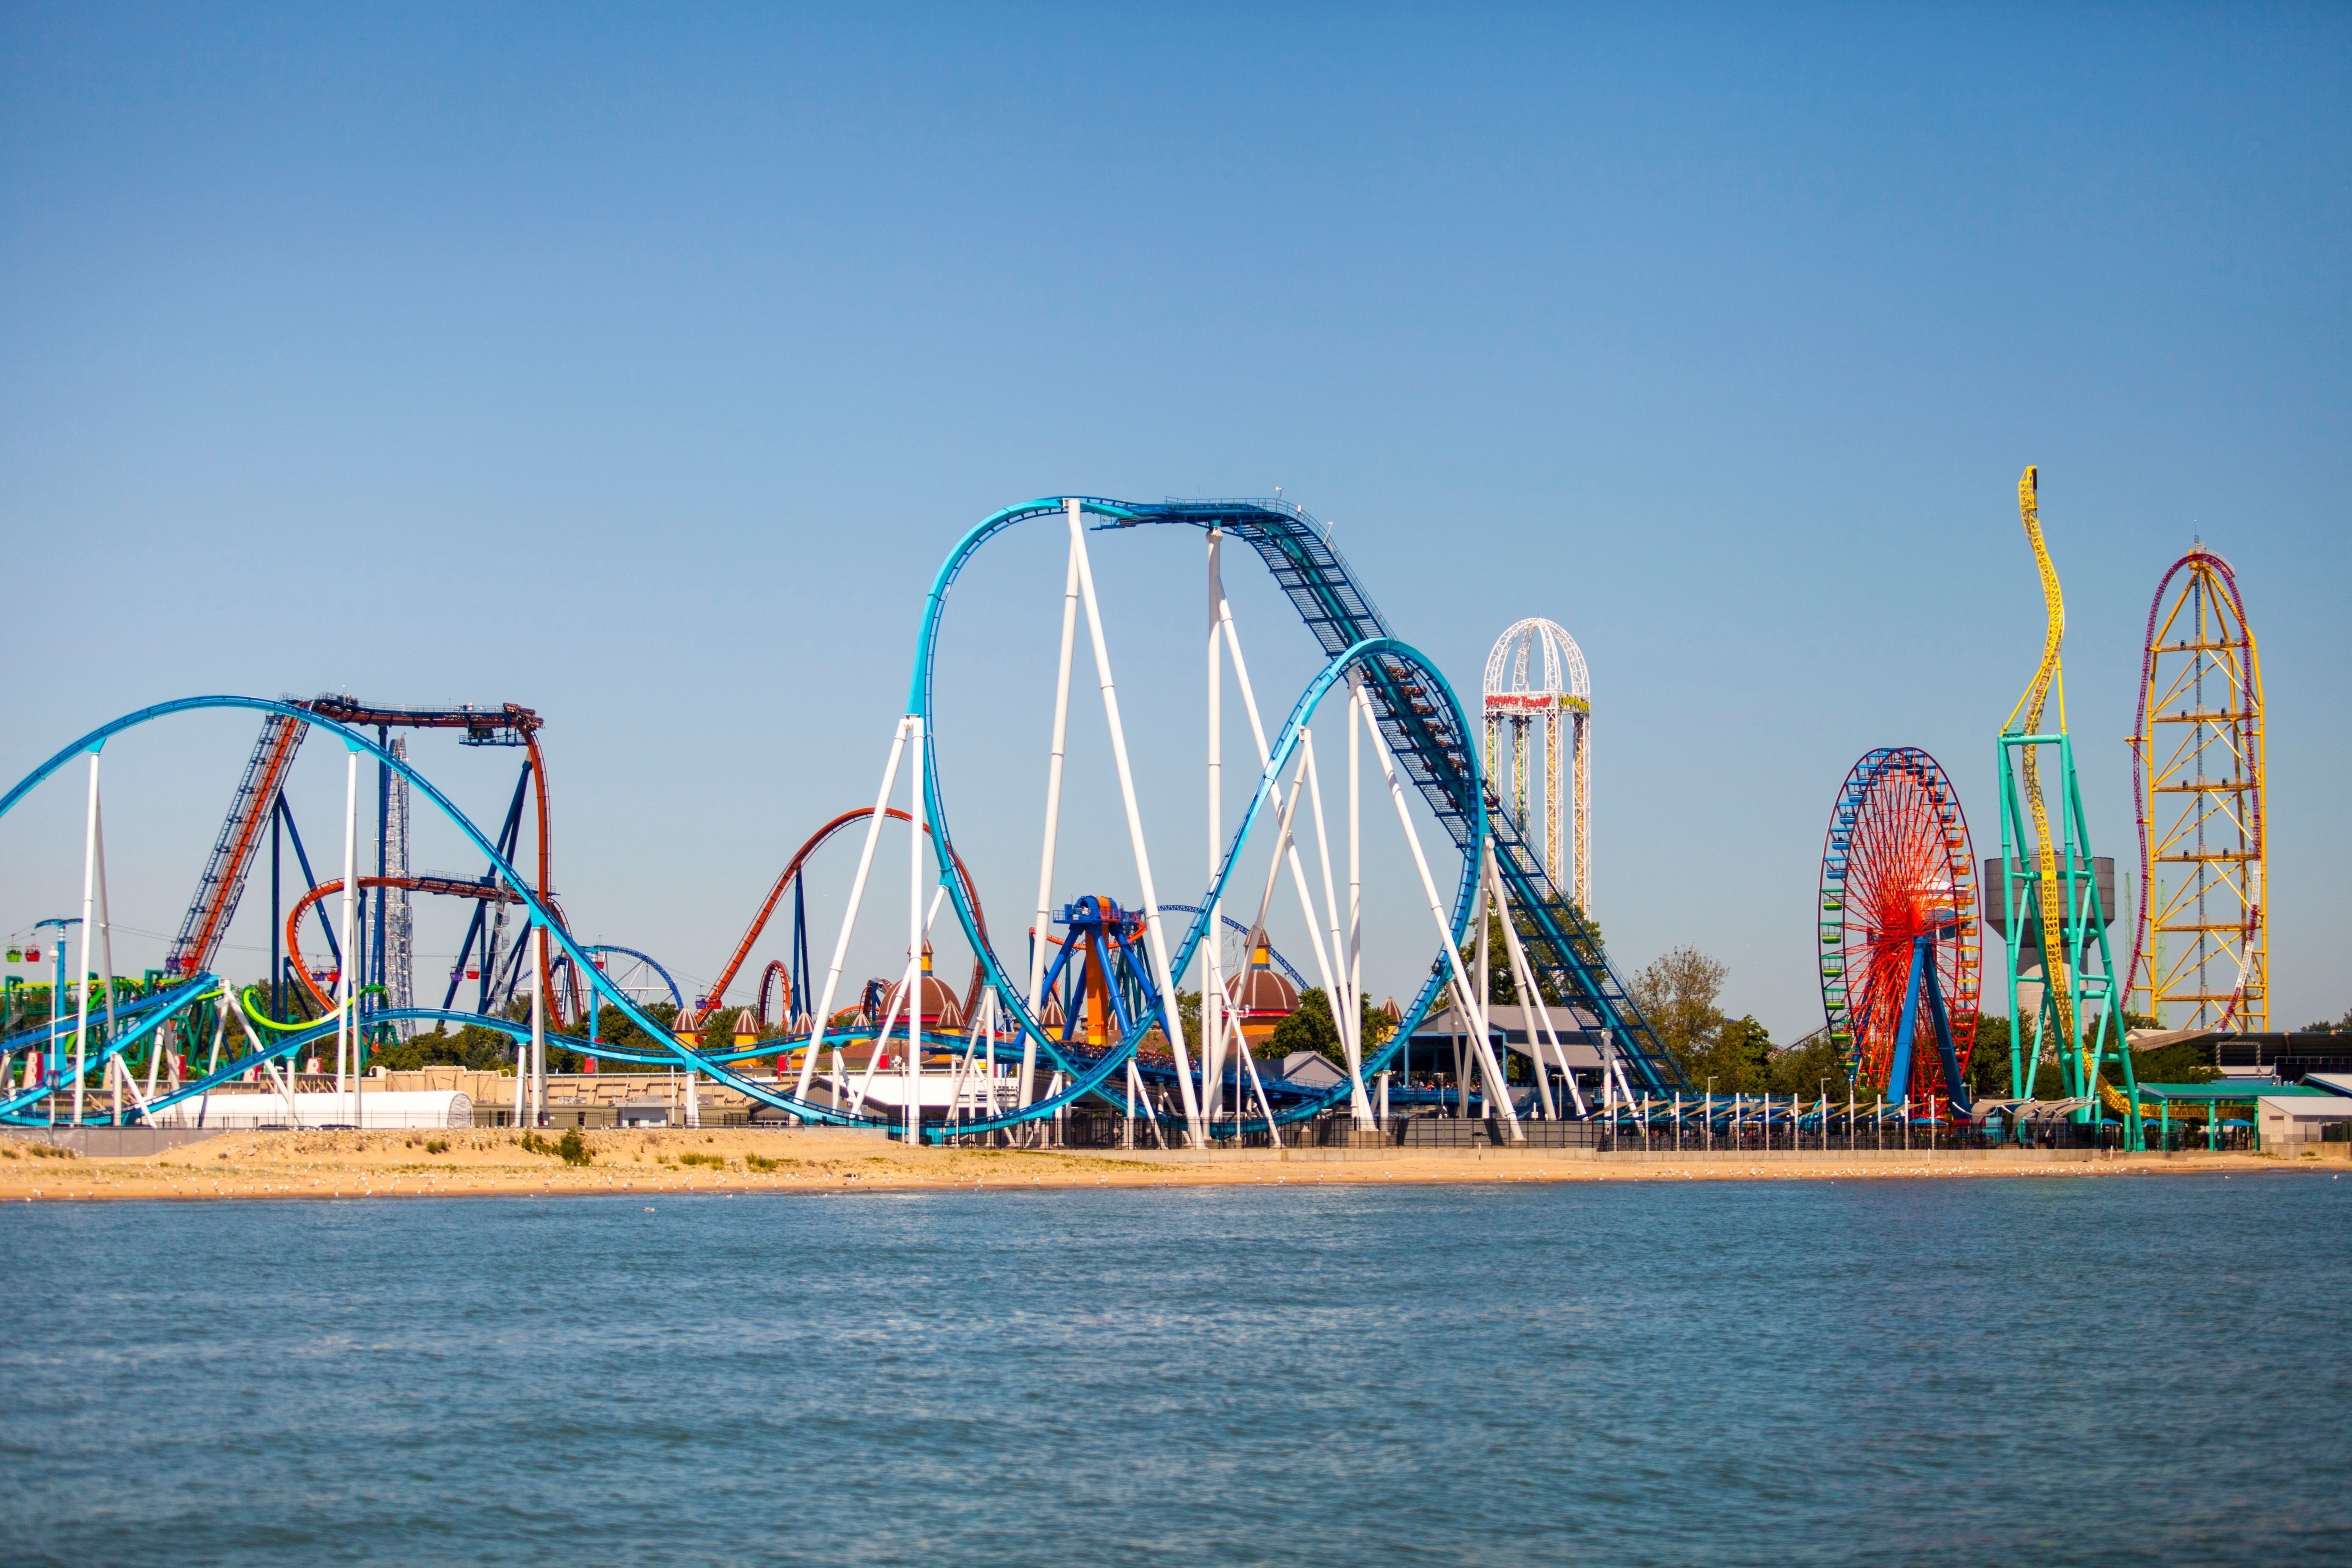 Cedar Point leaks details of new attraction, dining options for 2019